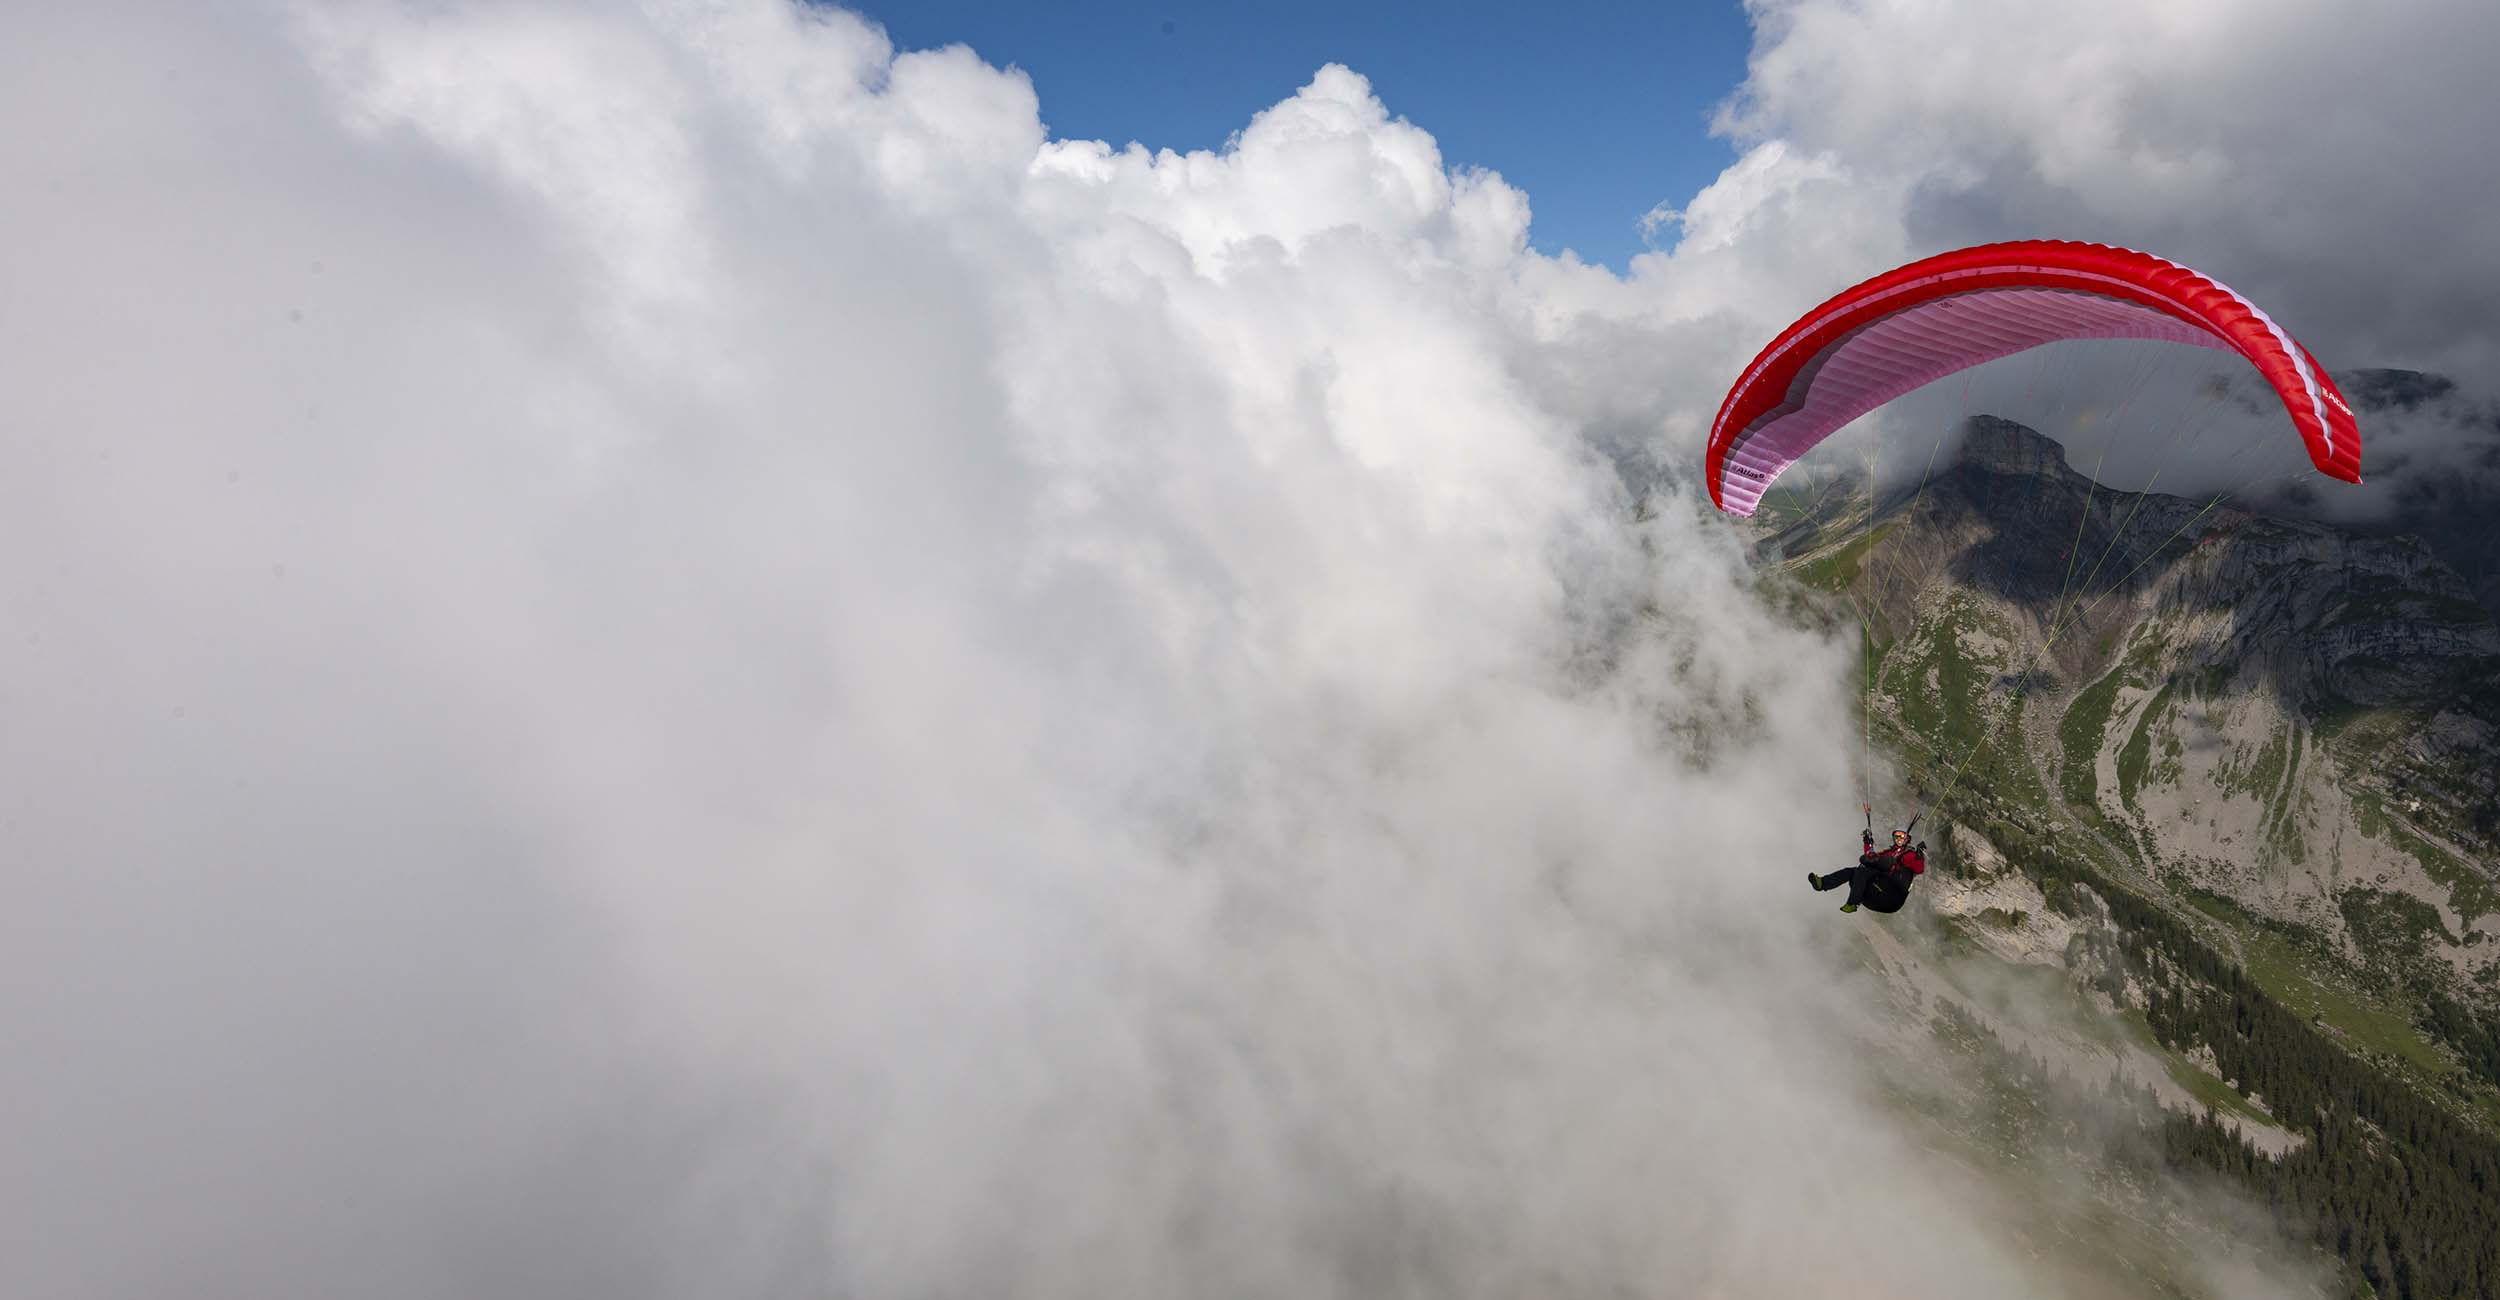 Getting up close and personal with the clouds. Photo: Jerome Maupoint